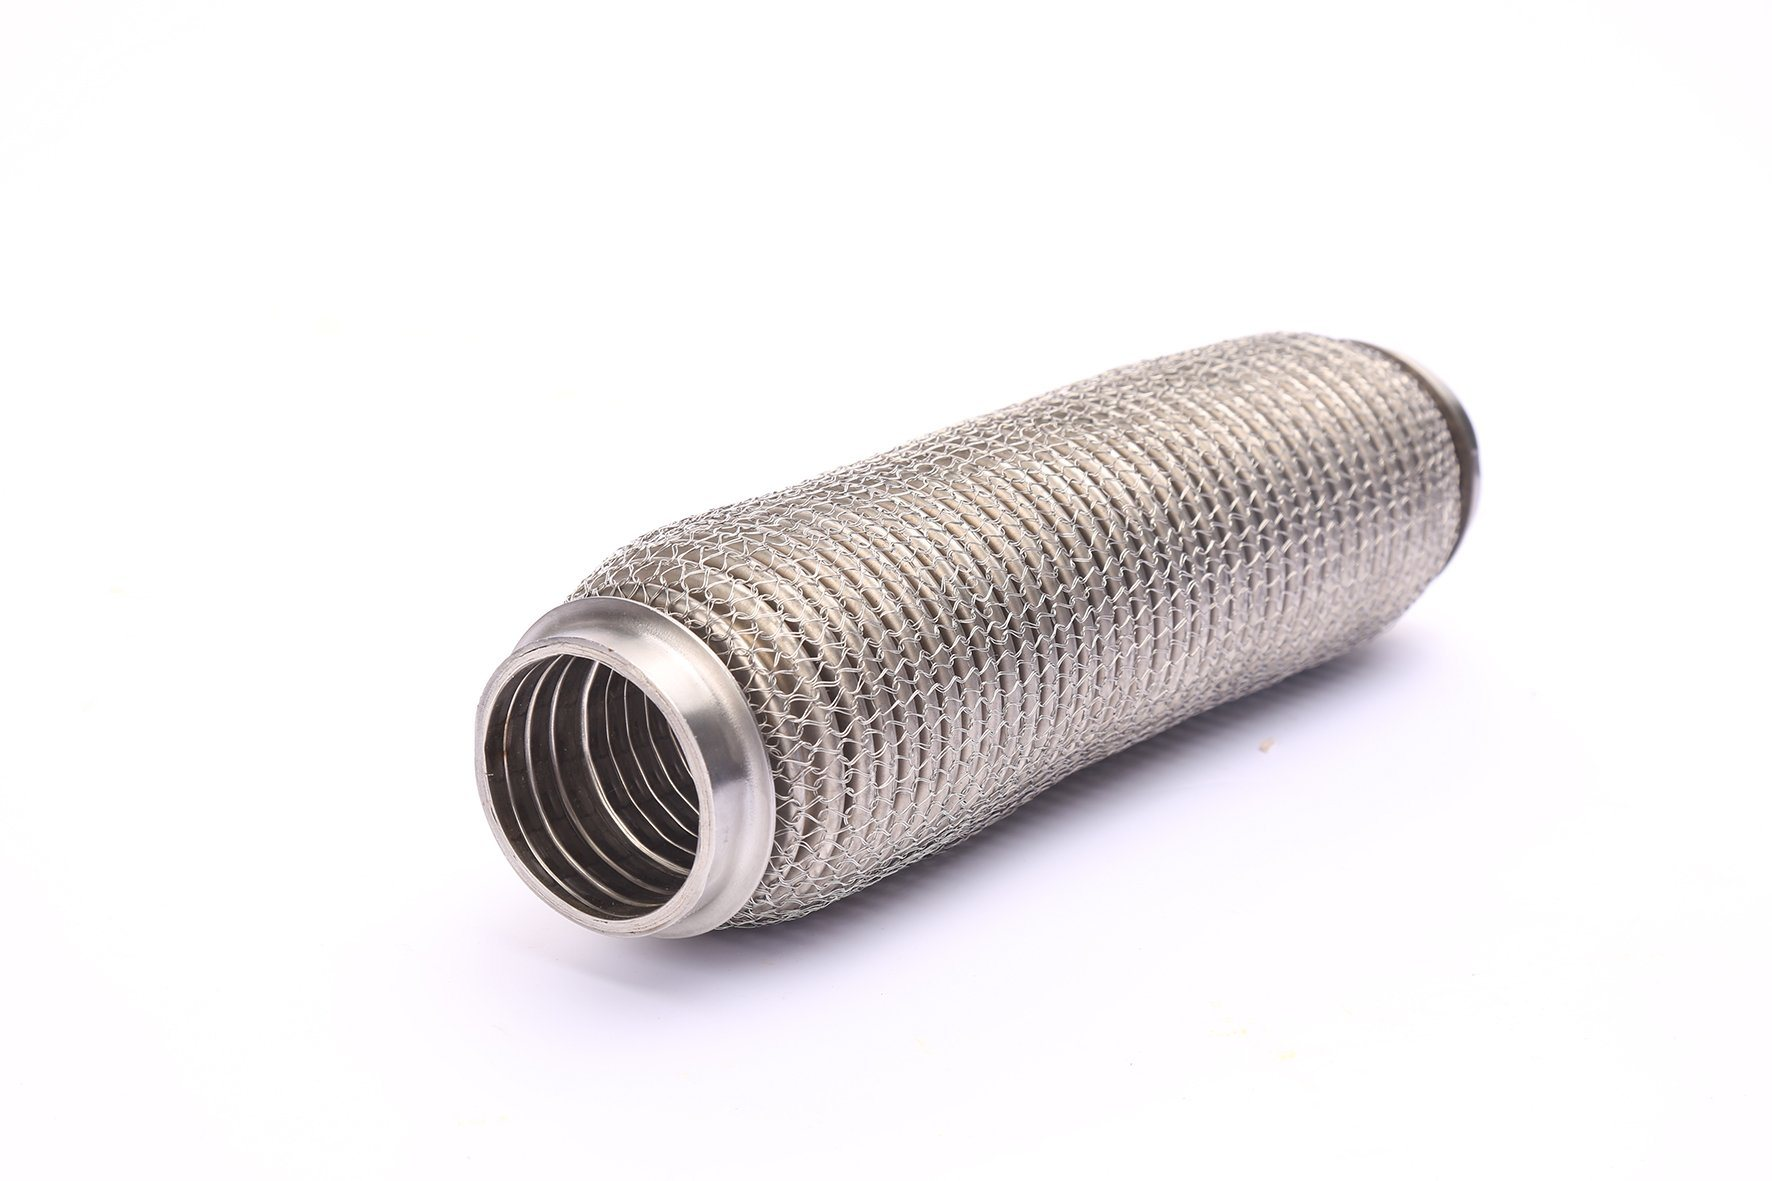 Flexible Rohre Chinese Supplier Corrugated Tube Stainless Steel Flexible Tube